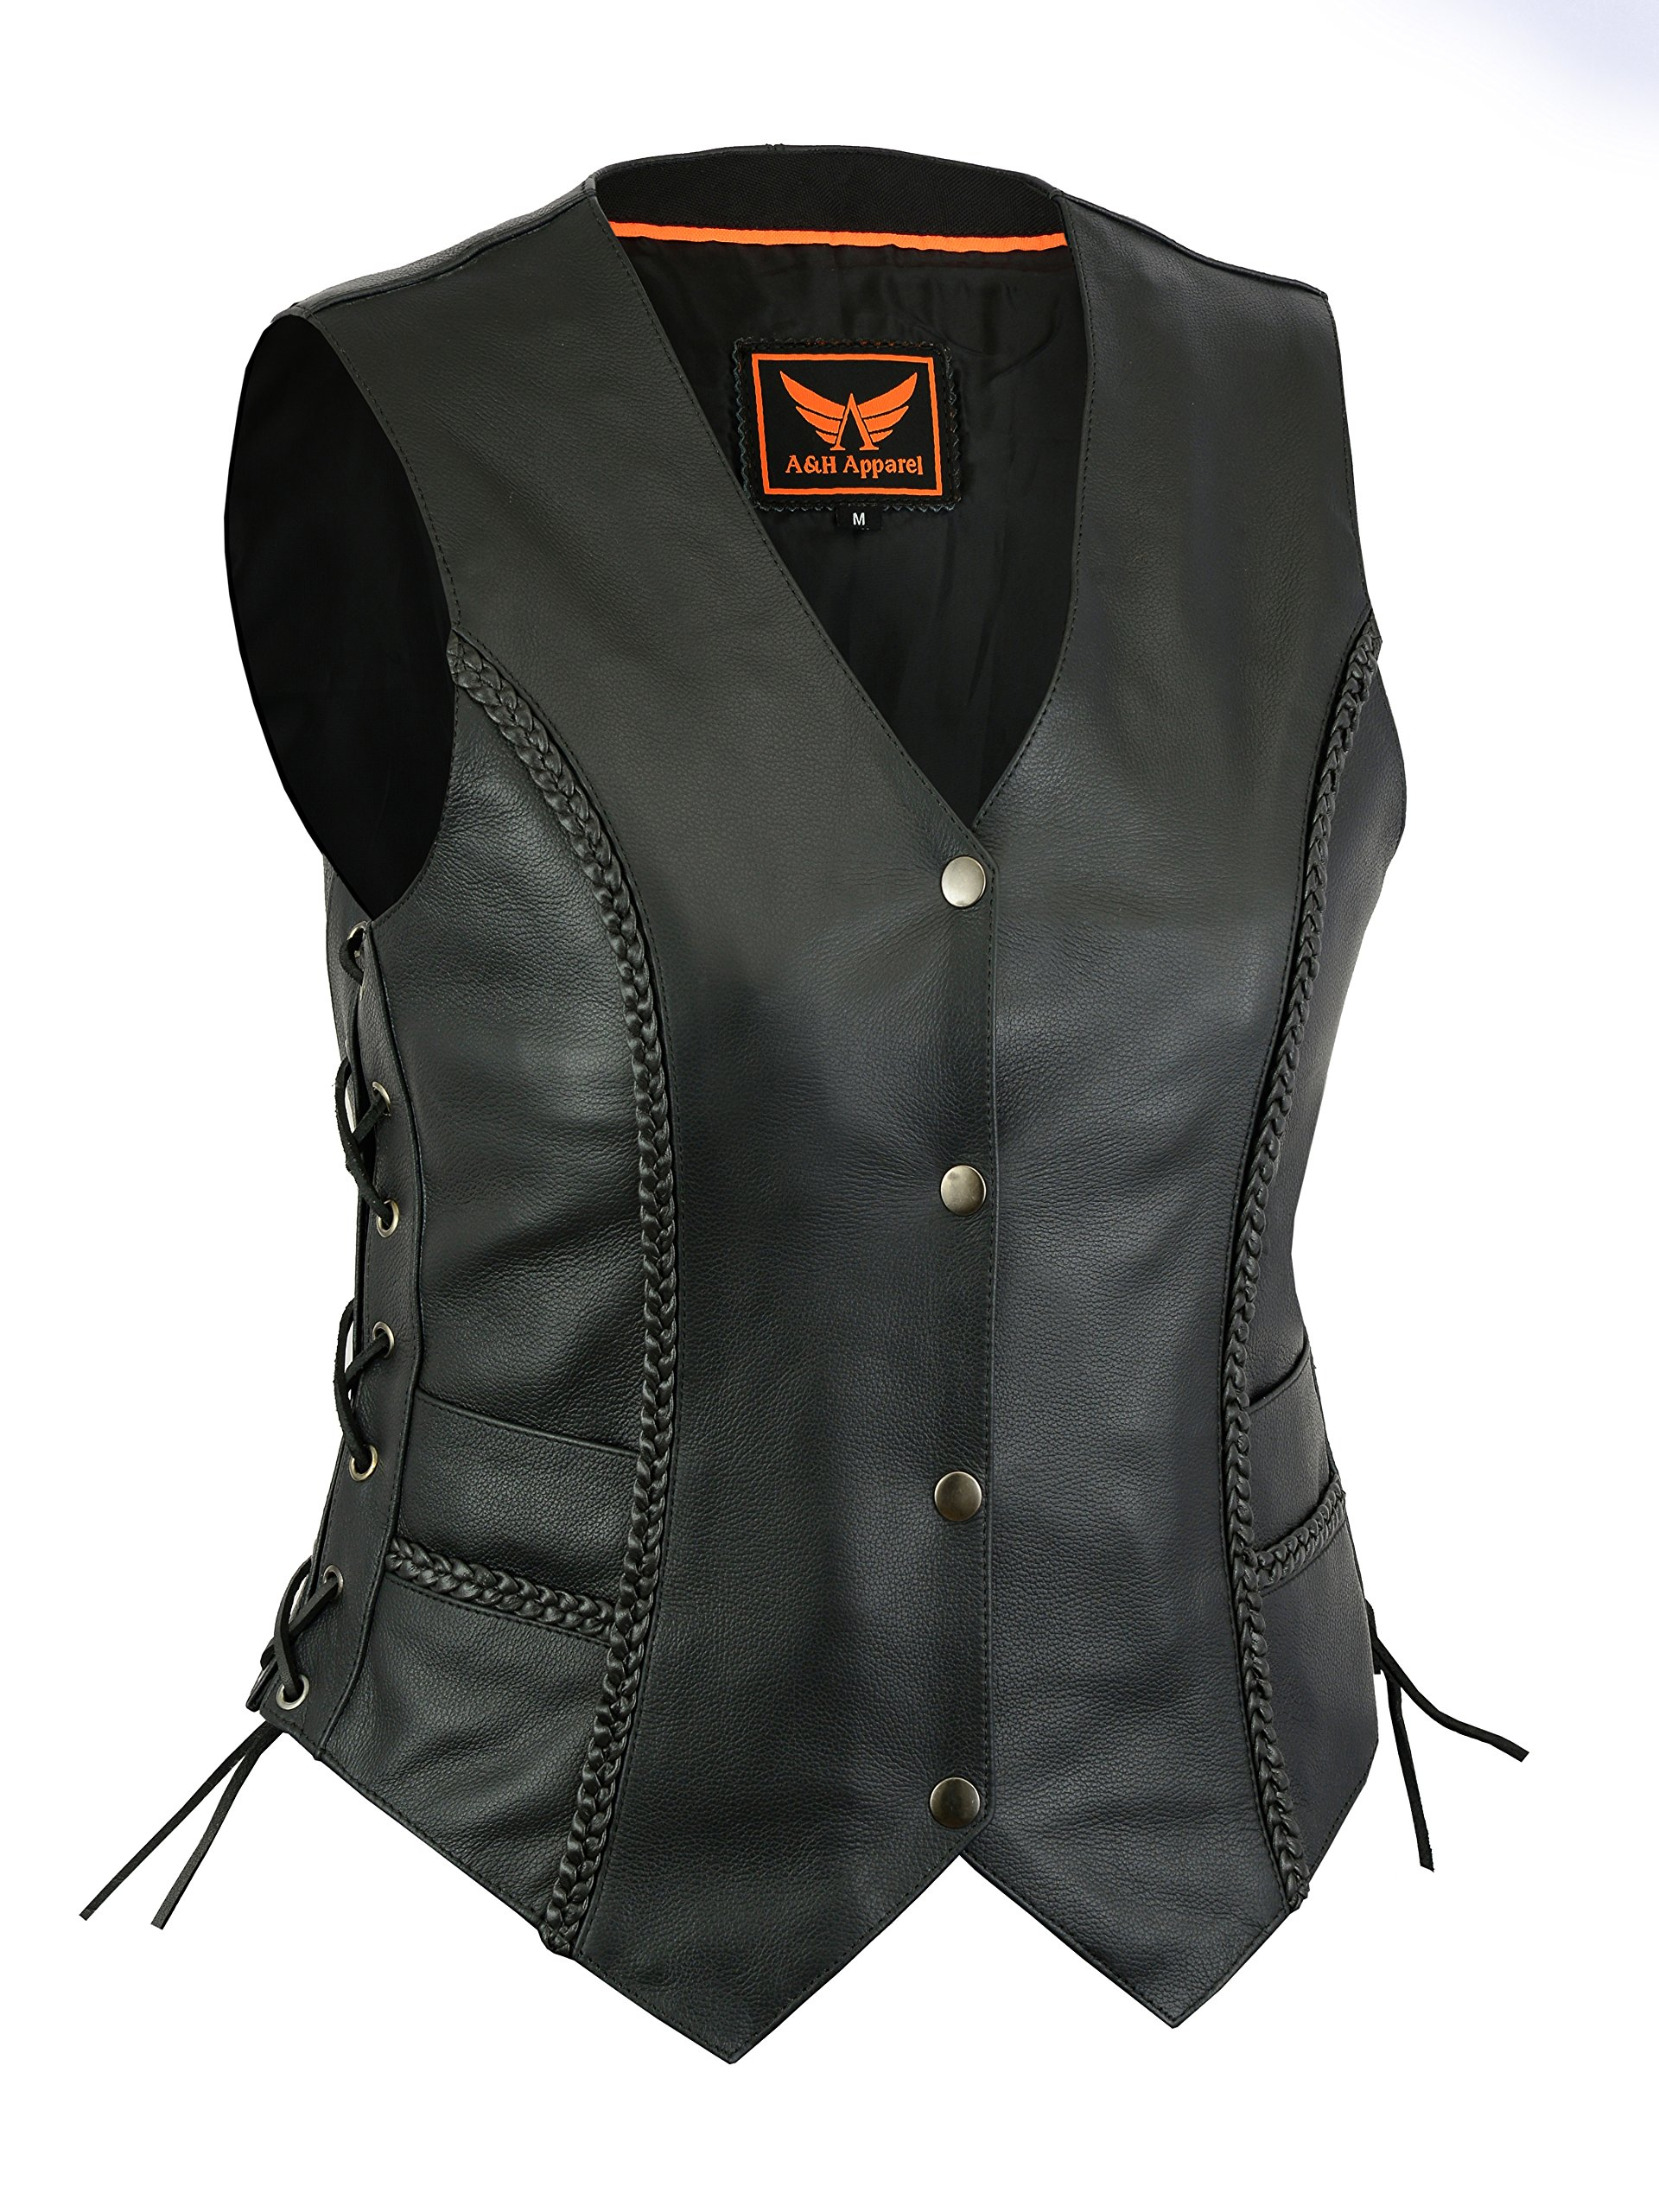 A&H Apparel Women Motorcycle Biker Classic Vest Genuine Cowhide Leather Vest With Gun Pocket (X-Small)